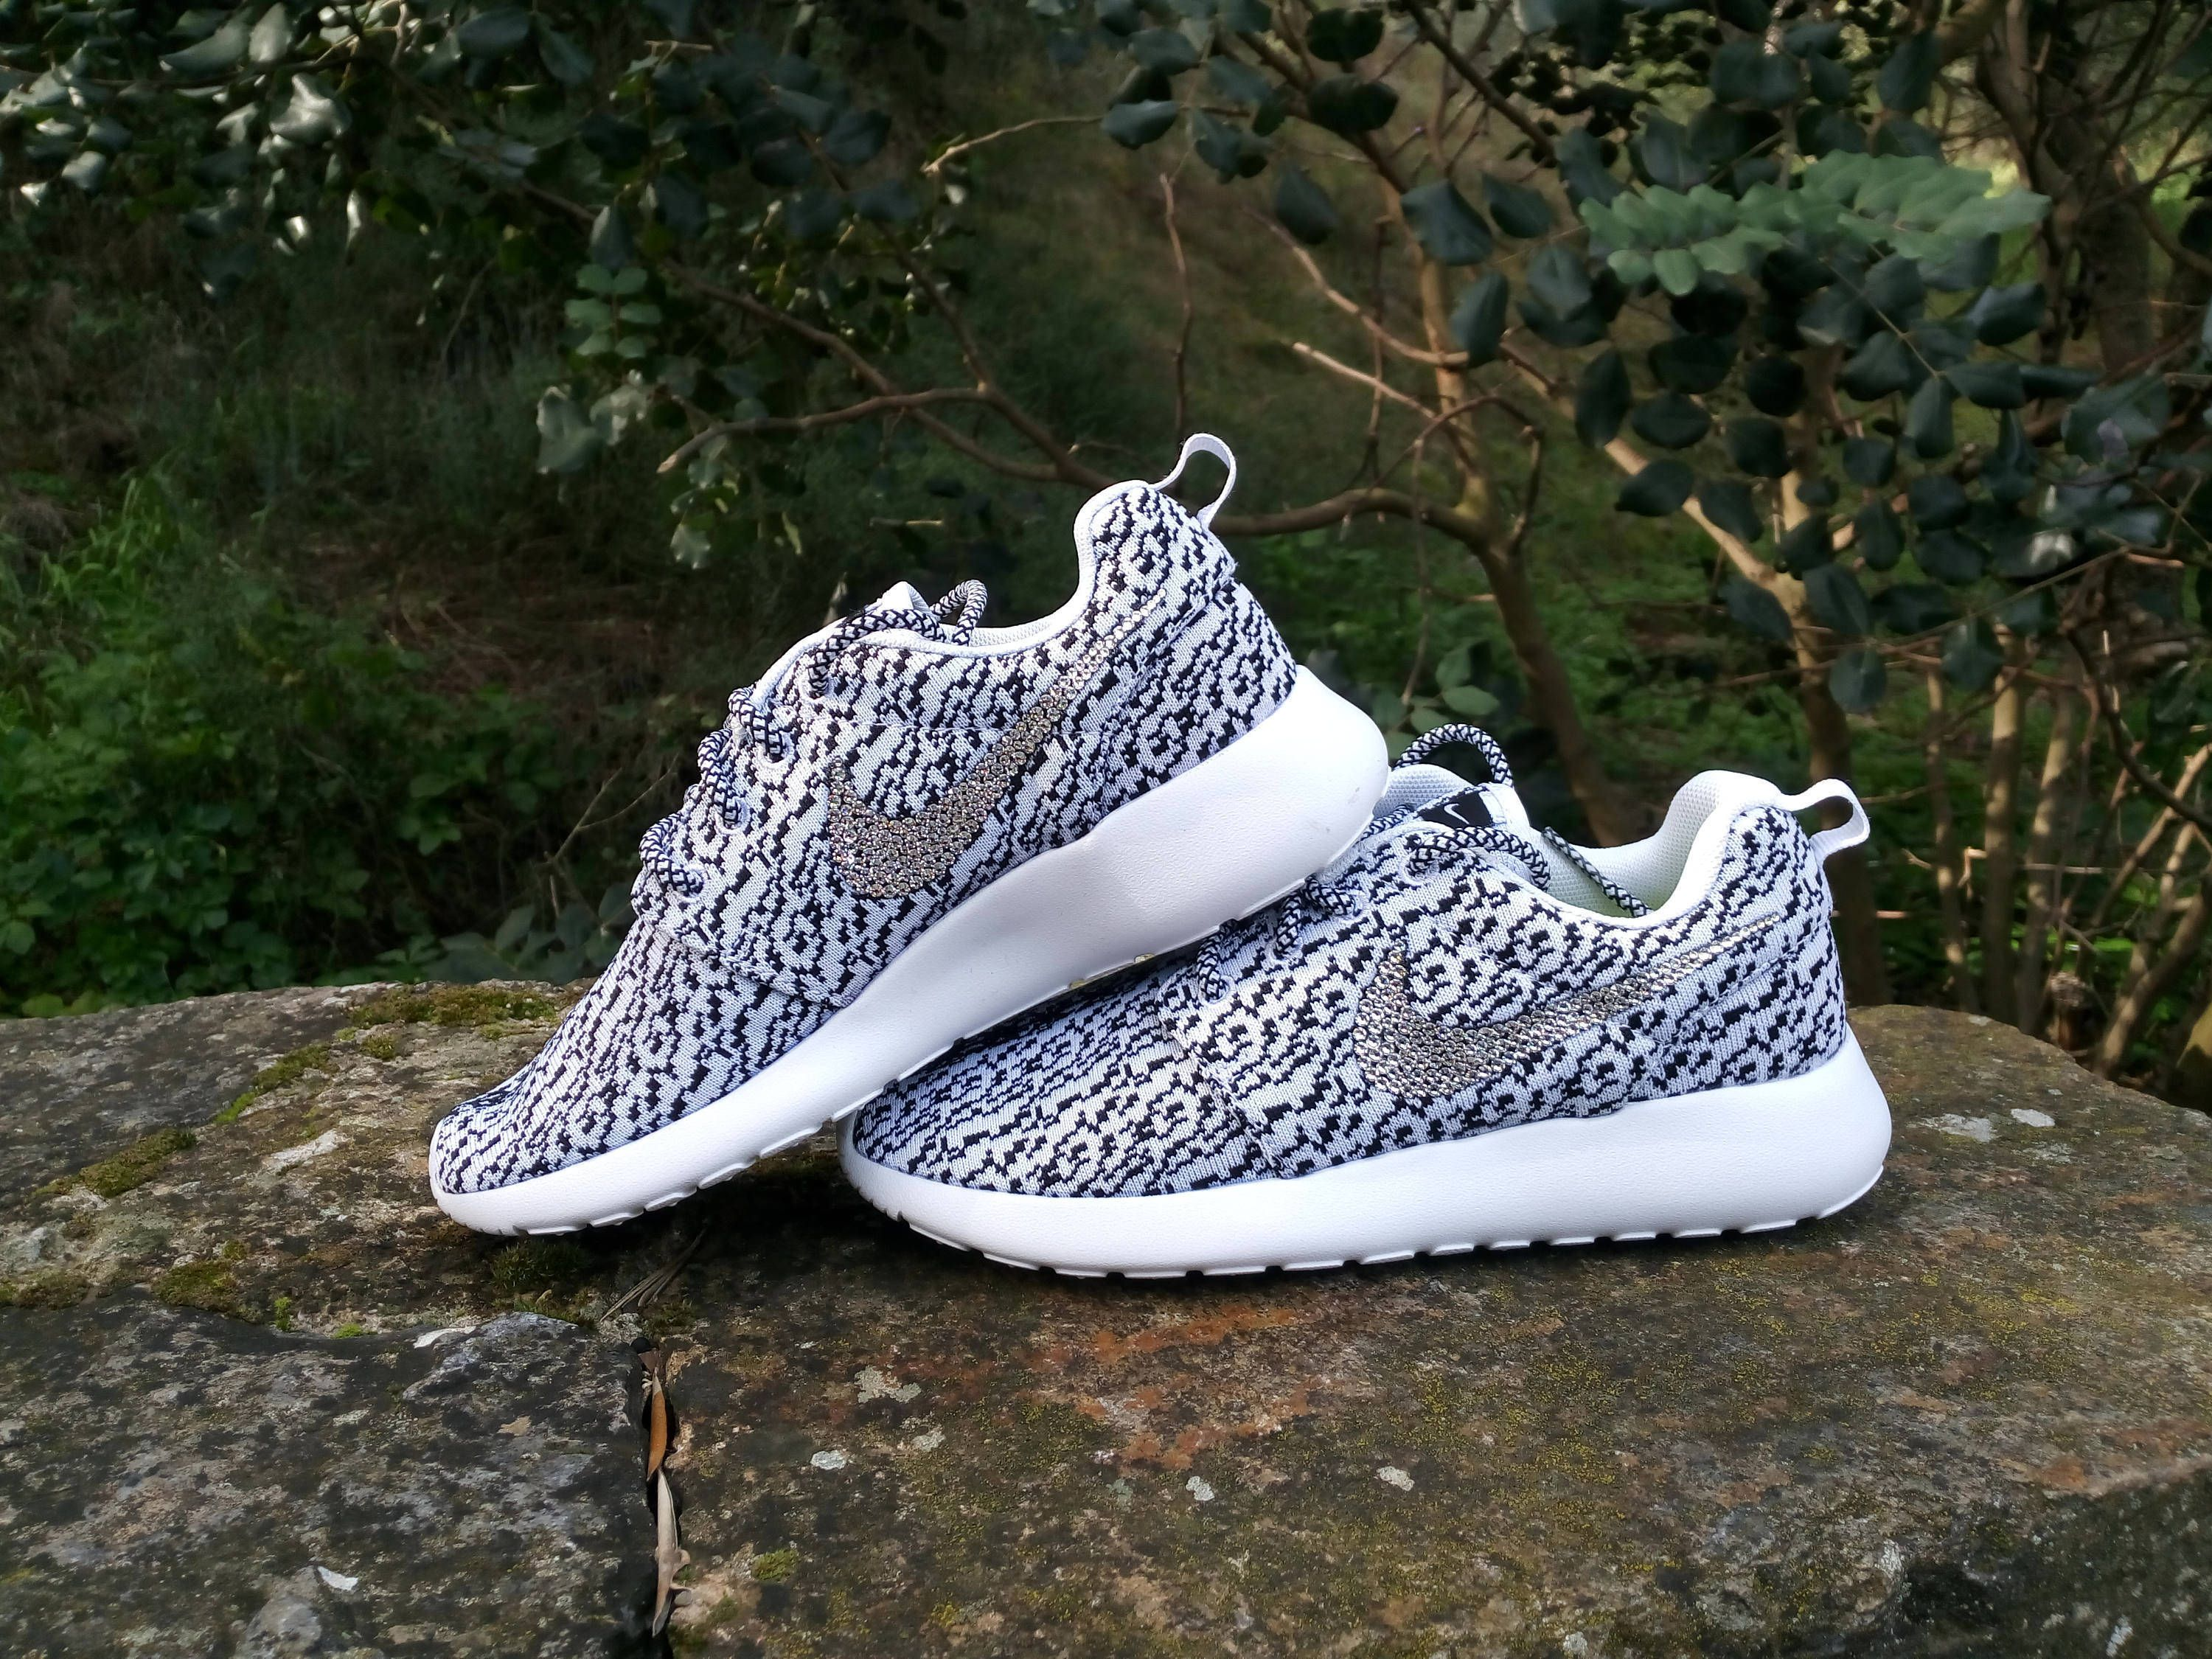 Coutume Nike Roshe Courir Boost Yeezy 350 Oreo